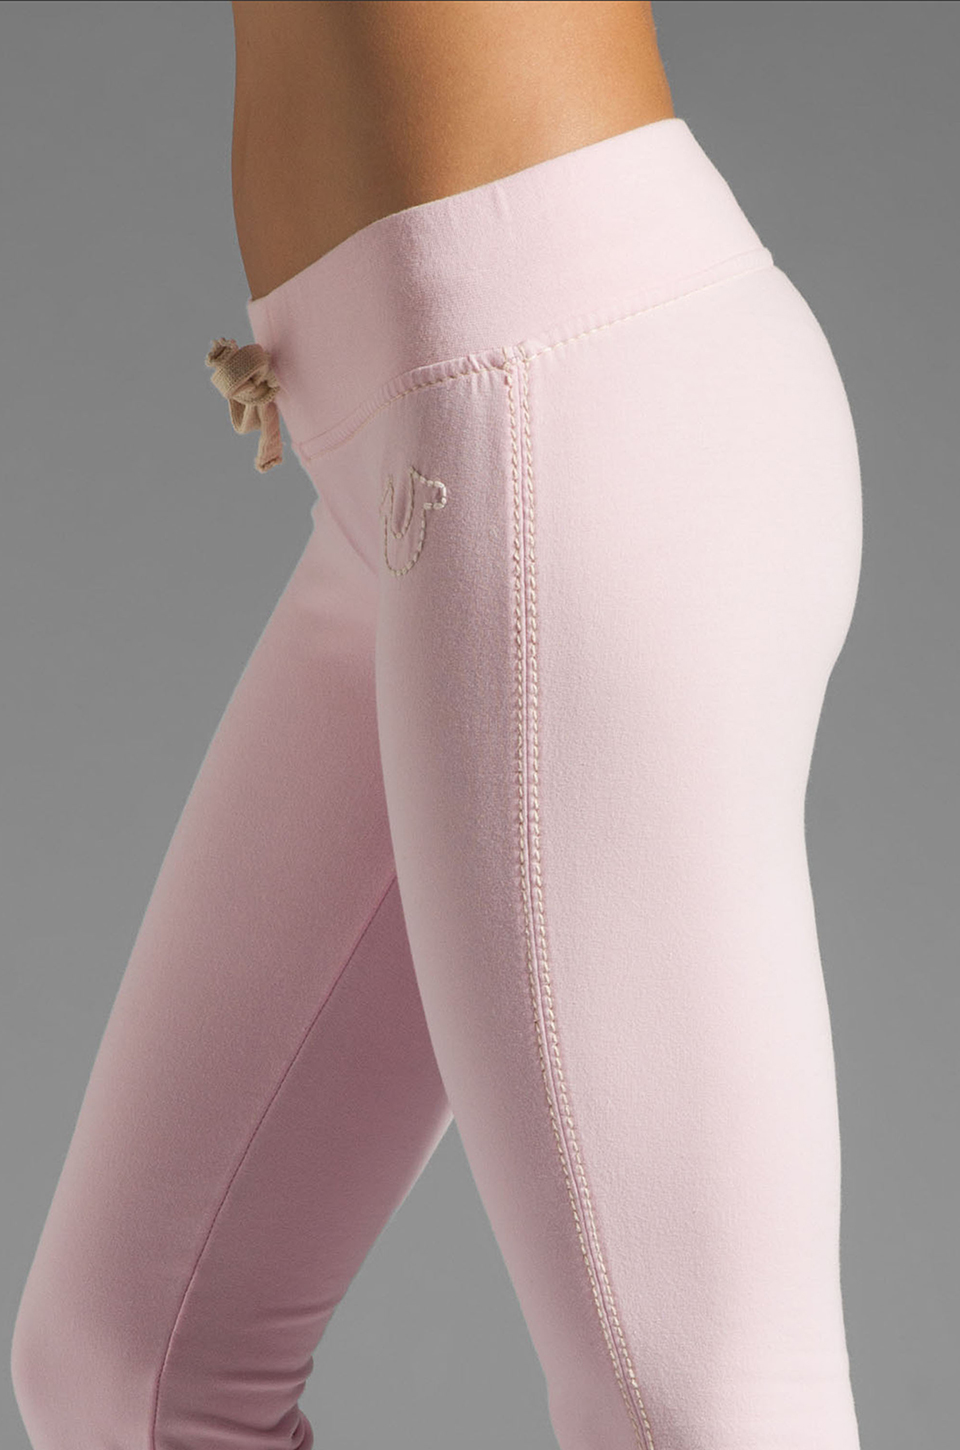 True Religion Marissa Pant in Baby Pink